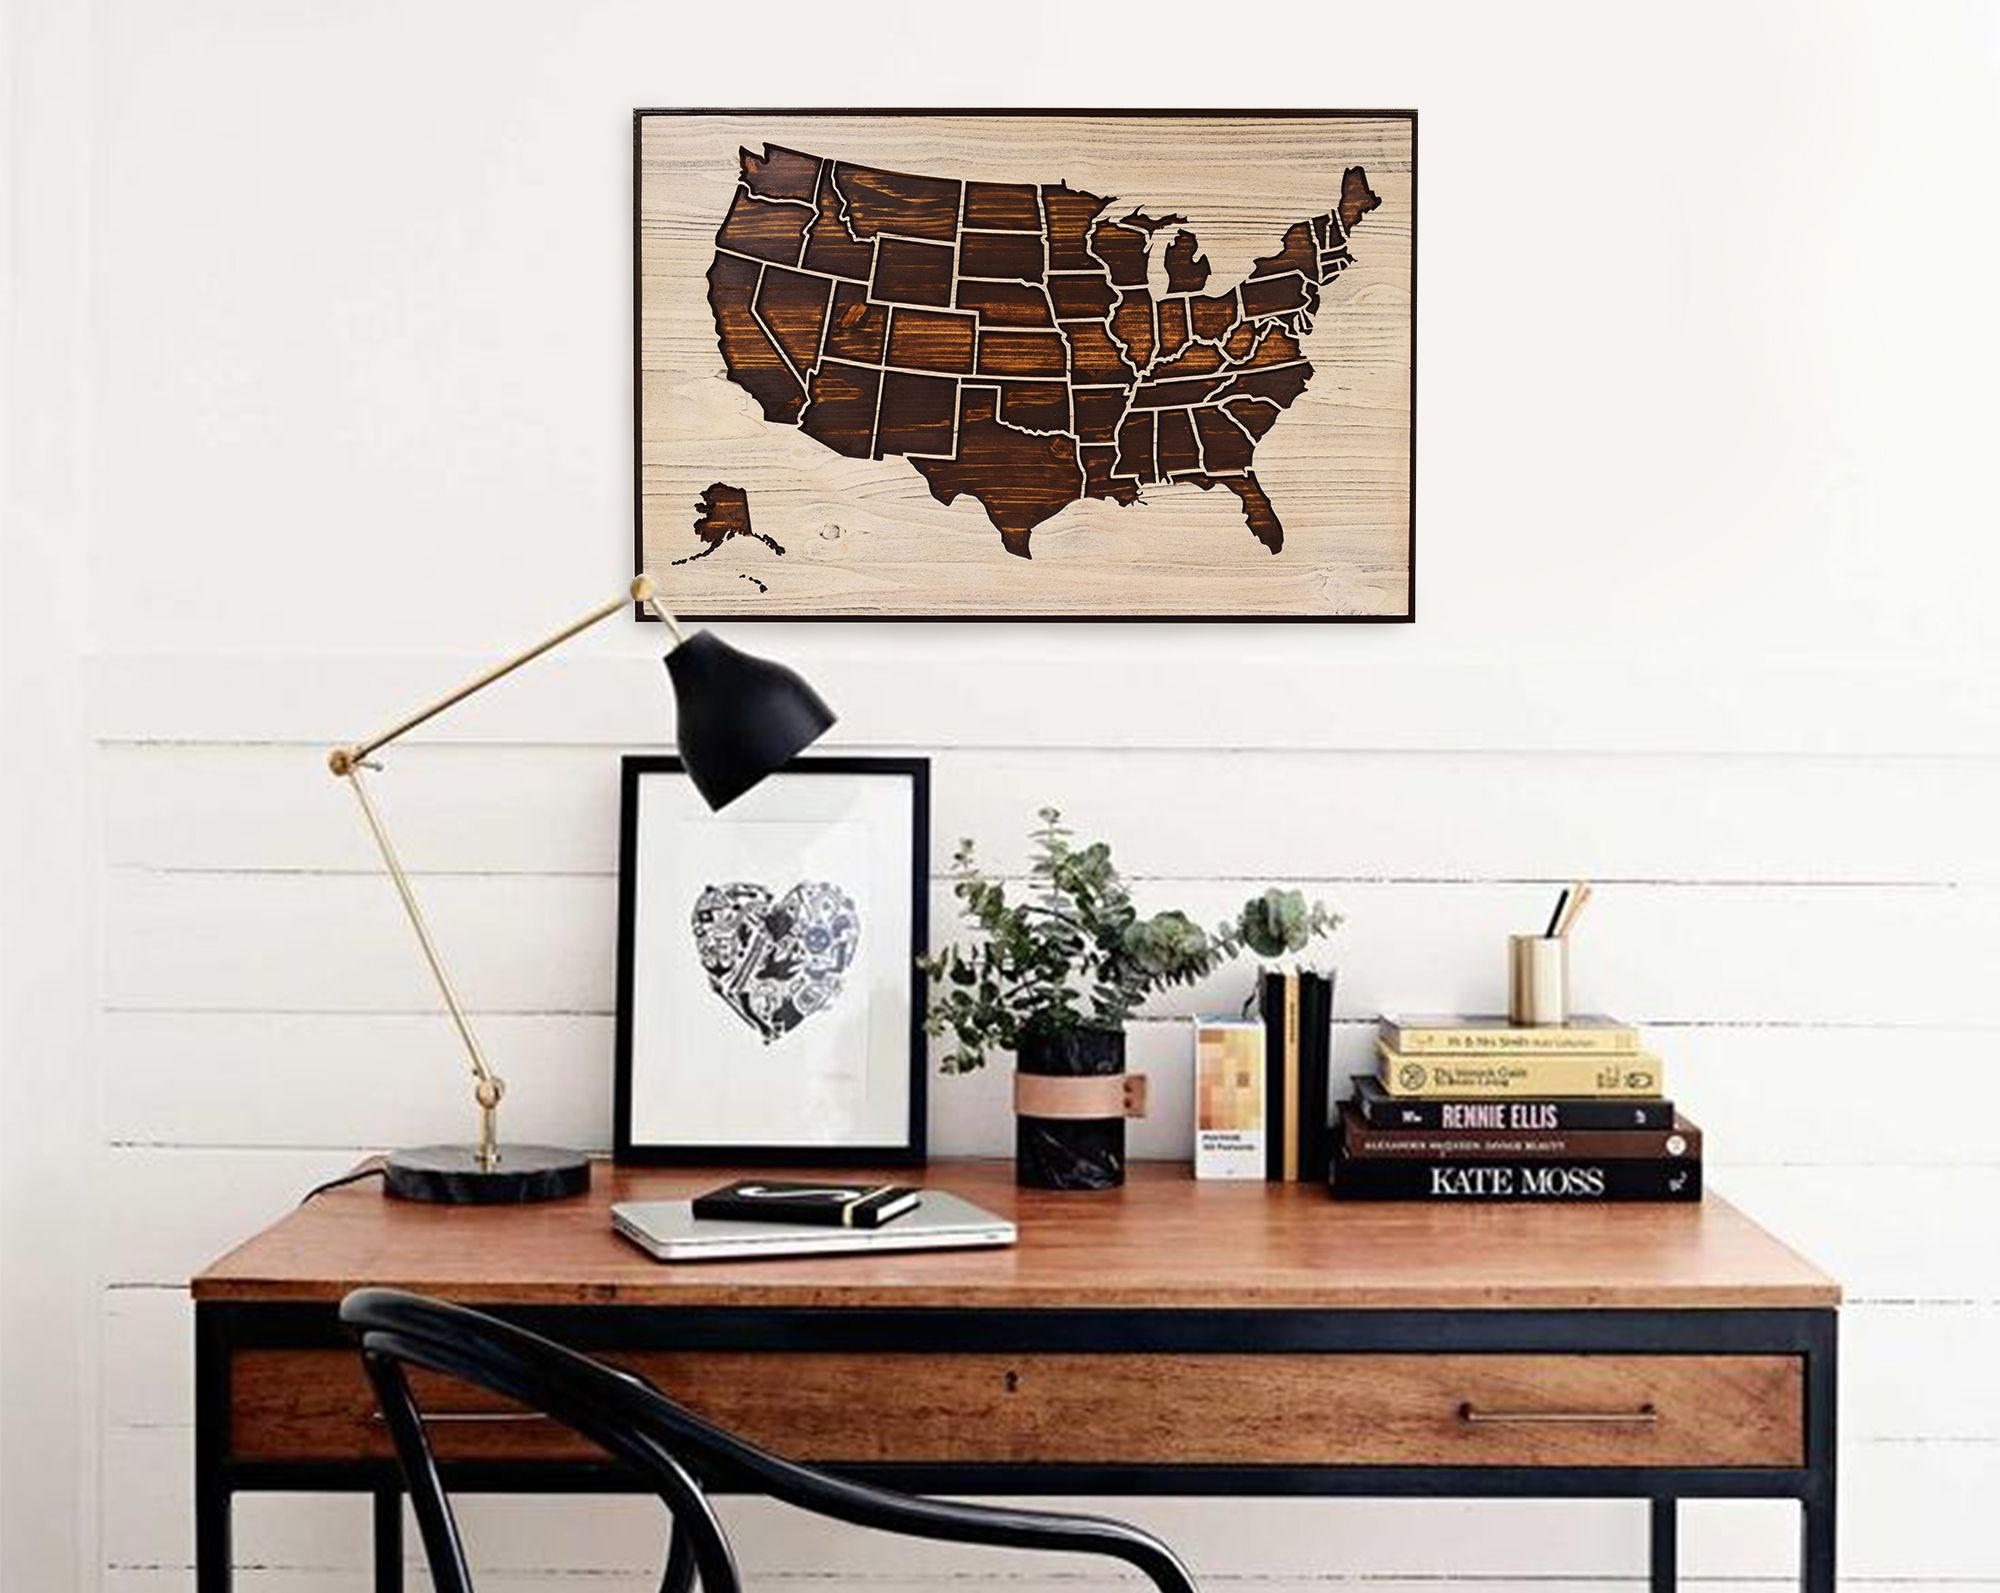 Superieur Howdy Owl: United States Map, Great Living Room And Office Decor!